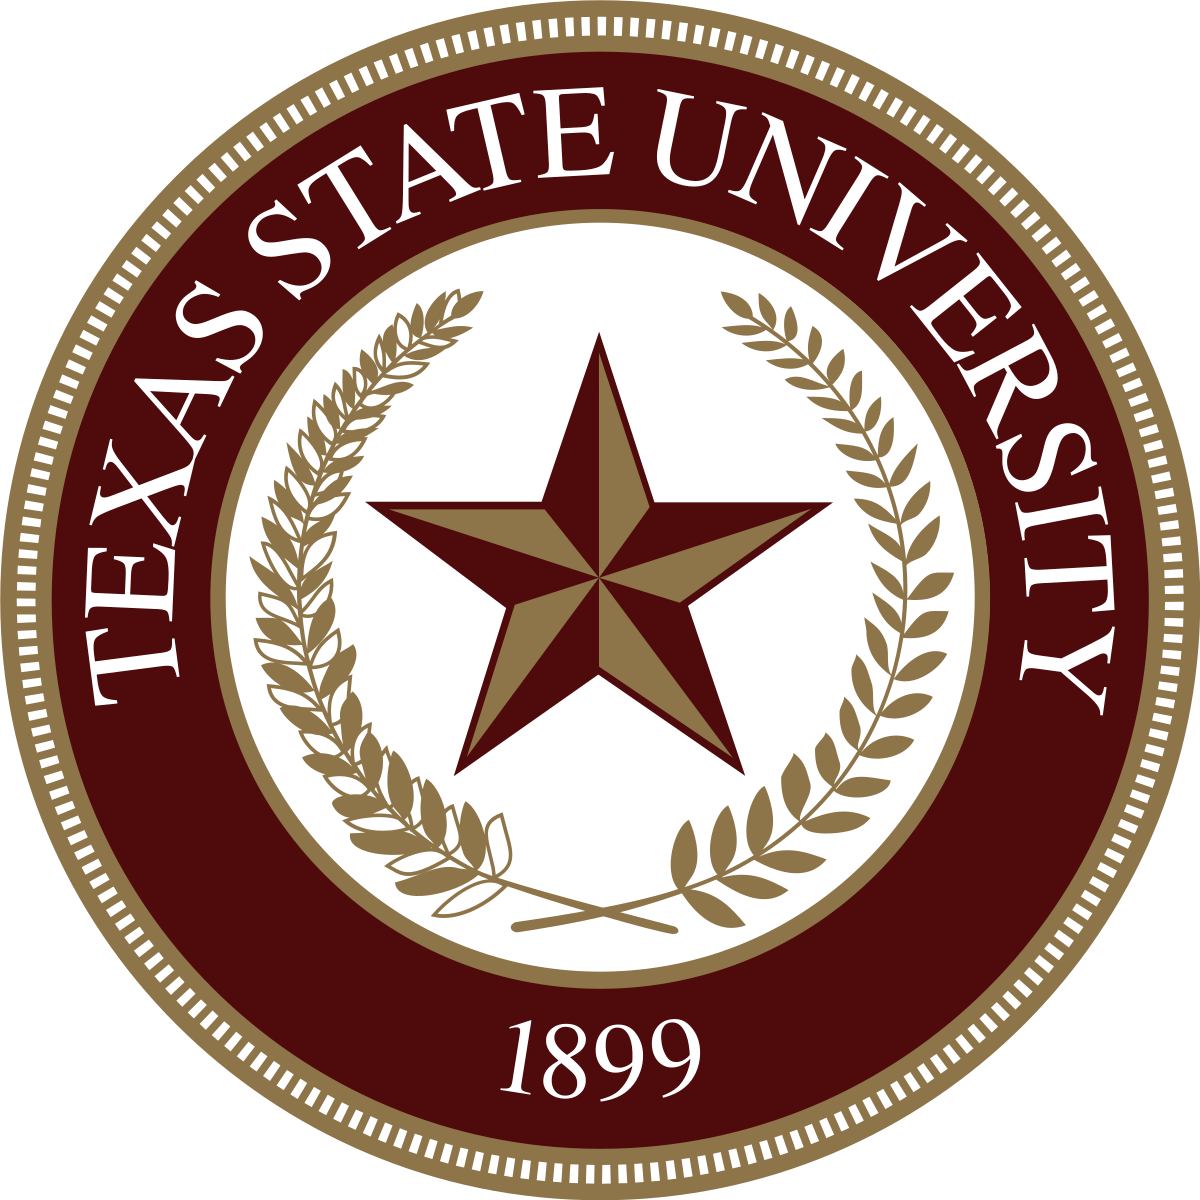 Texas A&M University at Commerce